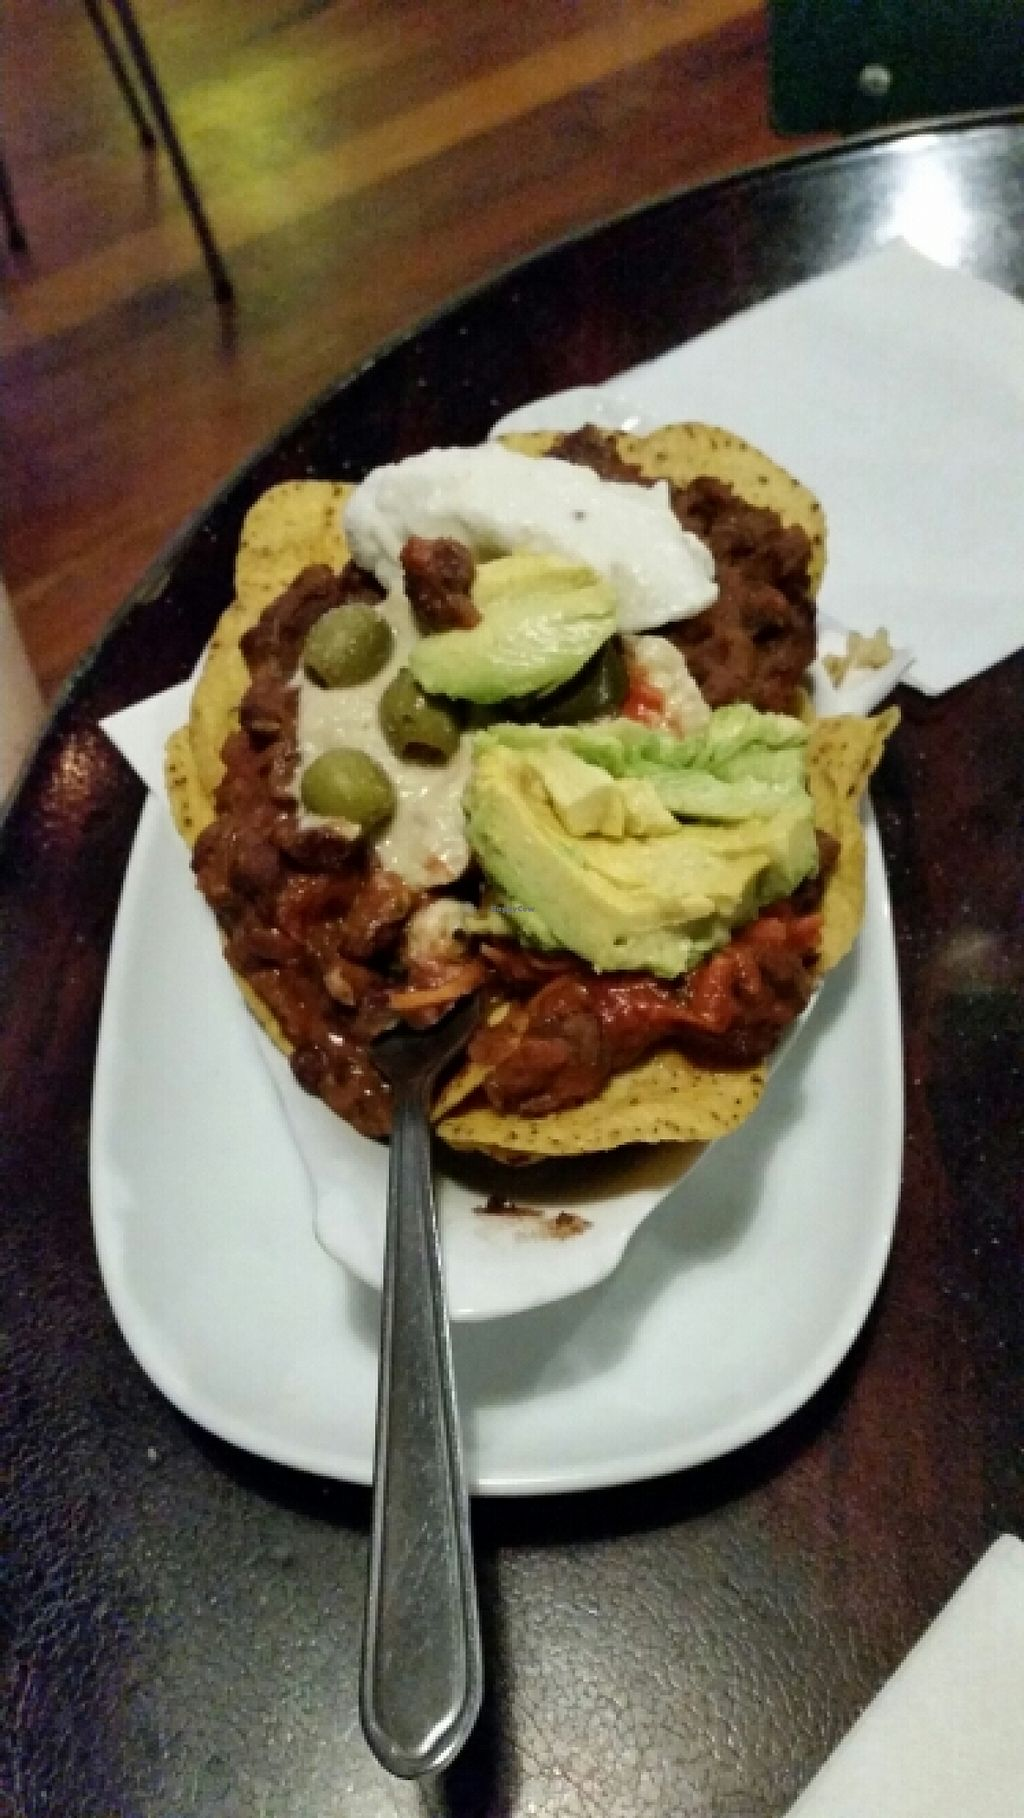 "Photo of Midnight Espresso Bar  by <a href=""/members/profile/AndyTheVWDude"">AndyTheVWDude</a> <br/>The small vege nacho main - plenty for 2 & tasty too <br/> May 7, 2016  - <a href='/contact/abuse/image/5126/147891'>Report</a>"